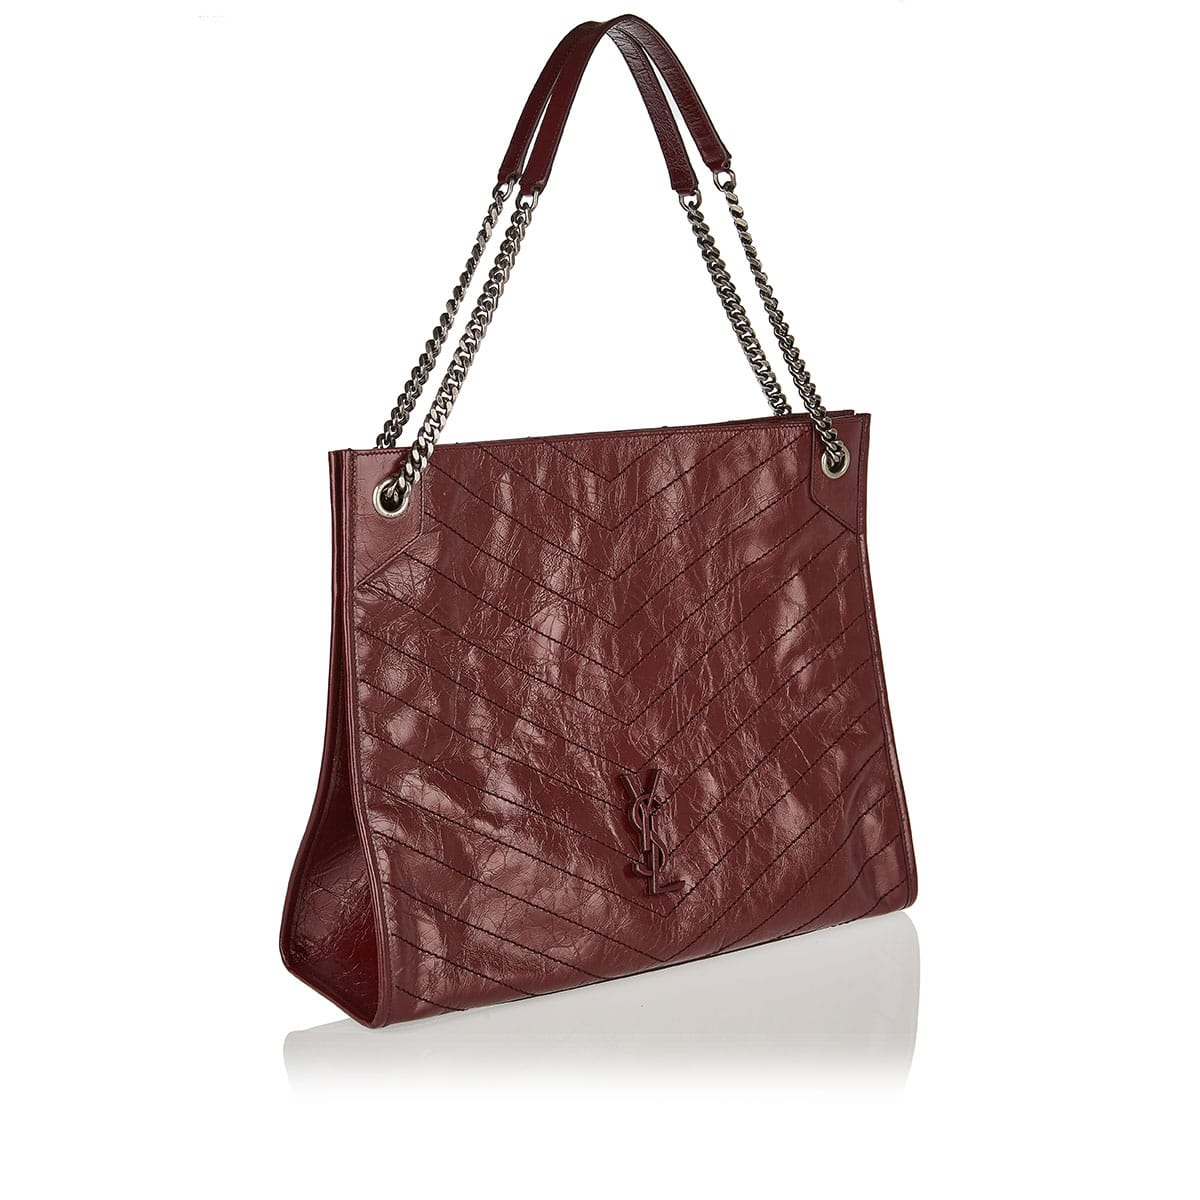 Niki large leather shopper